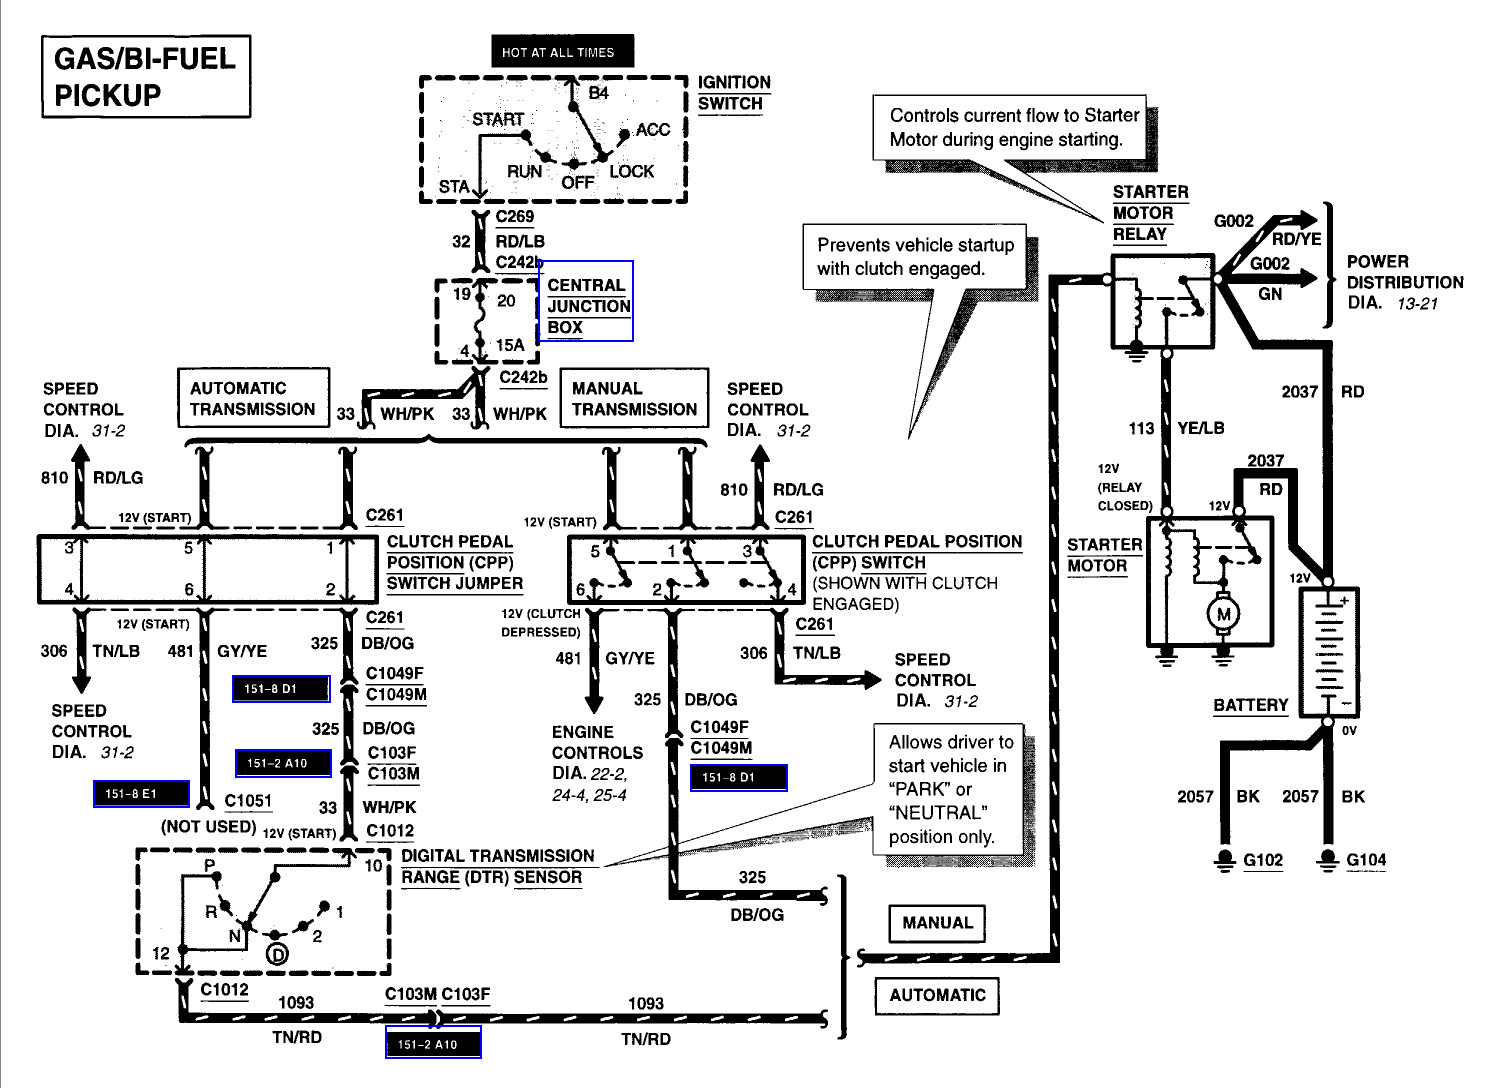 2002 ford excursion fuel pump wiring diagram wiring diagram sch ford excursion wiring diagram wiring diagram week 2002 ford excursion fuel pump wiring diagram